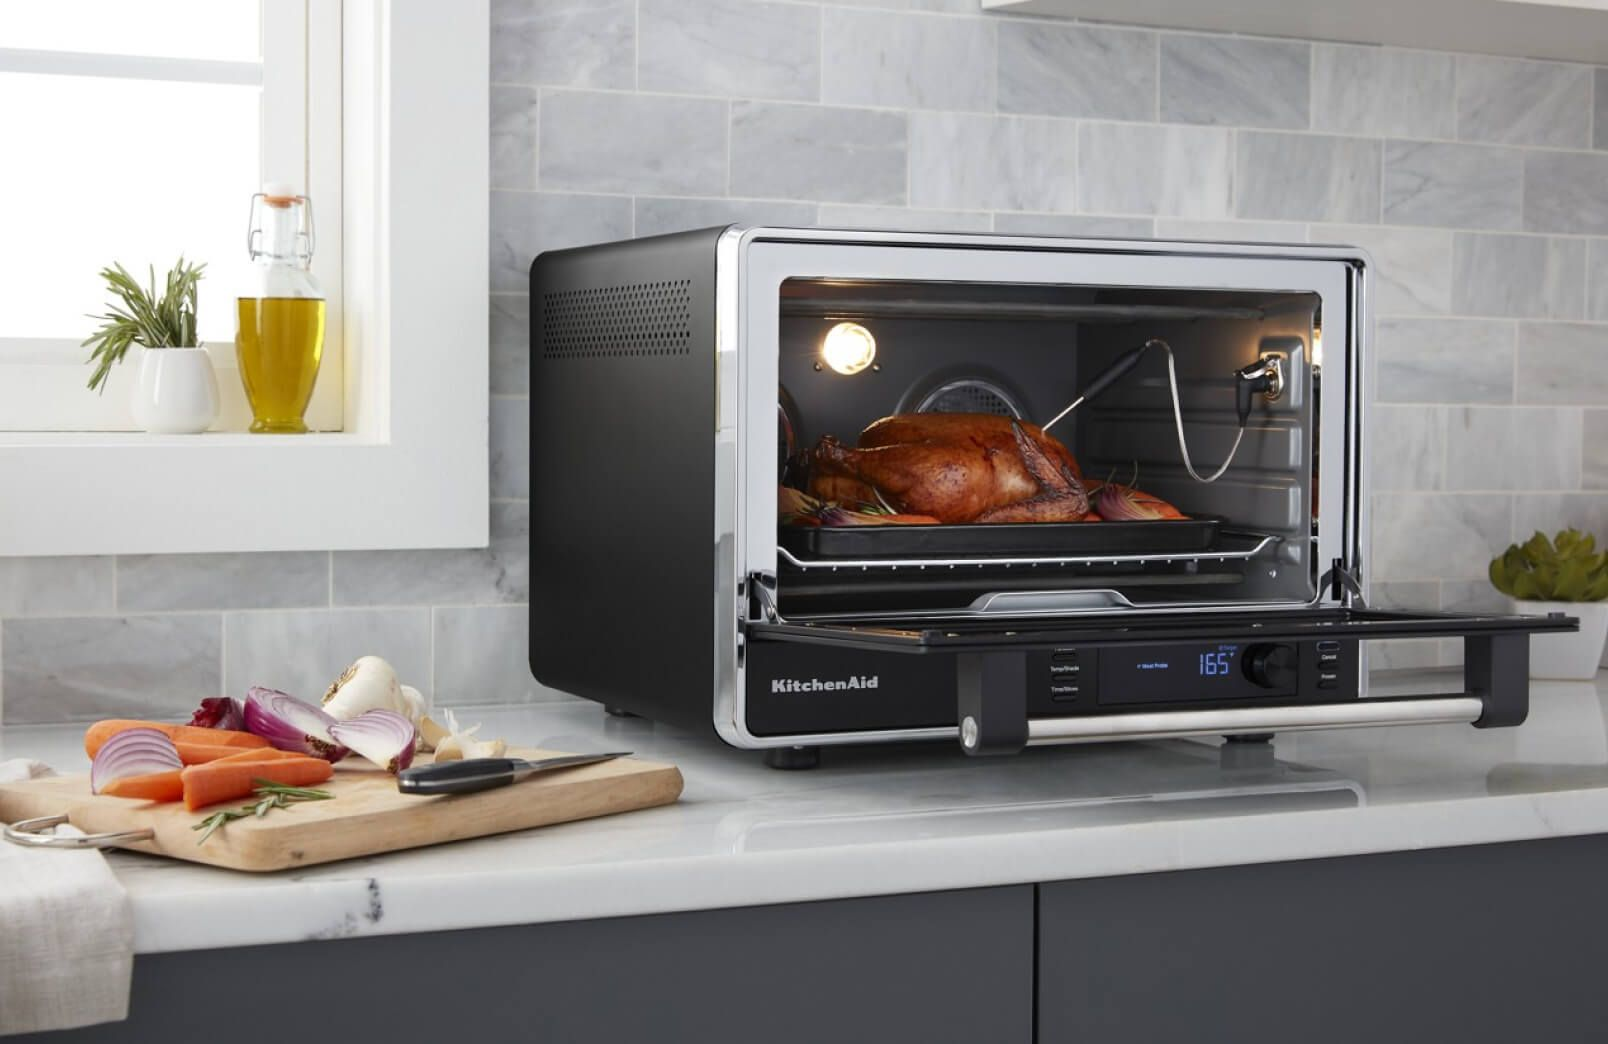 A KitchenAid® Dual Convection Countertop Oven roasting a whole chicken.